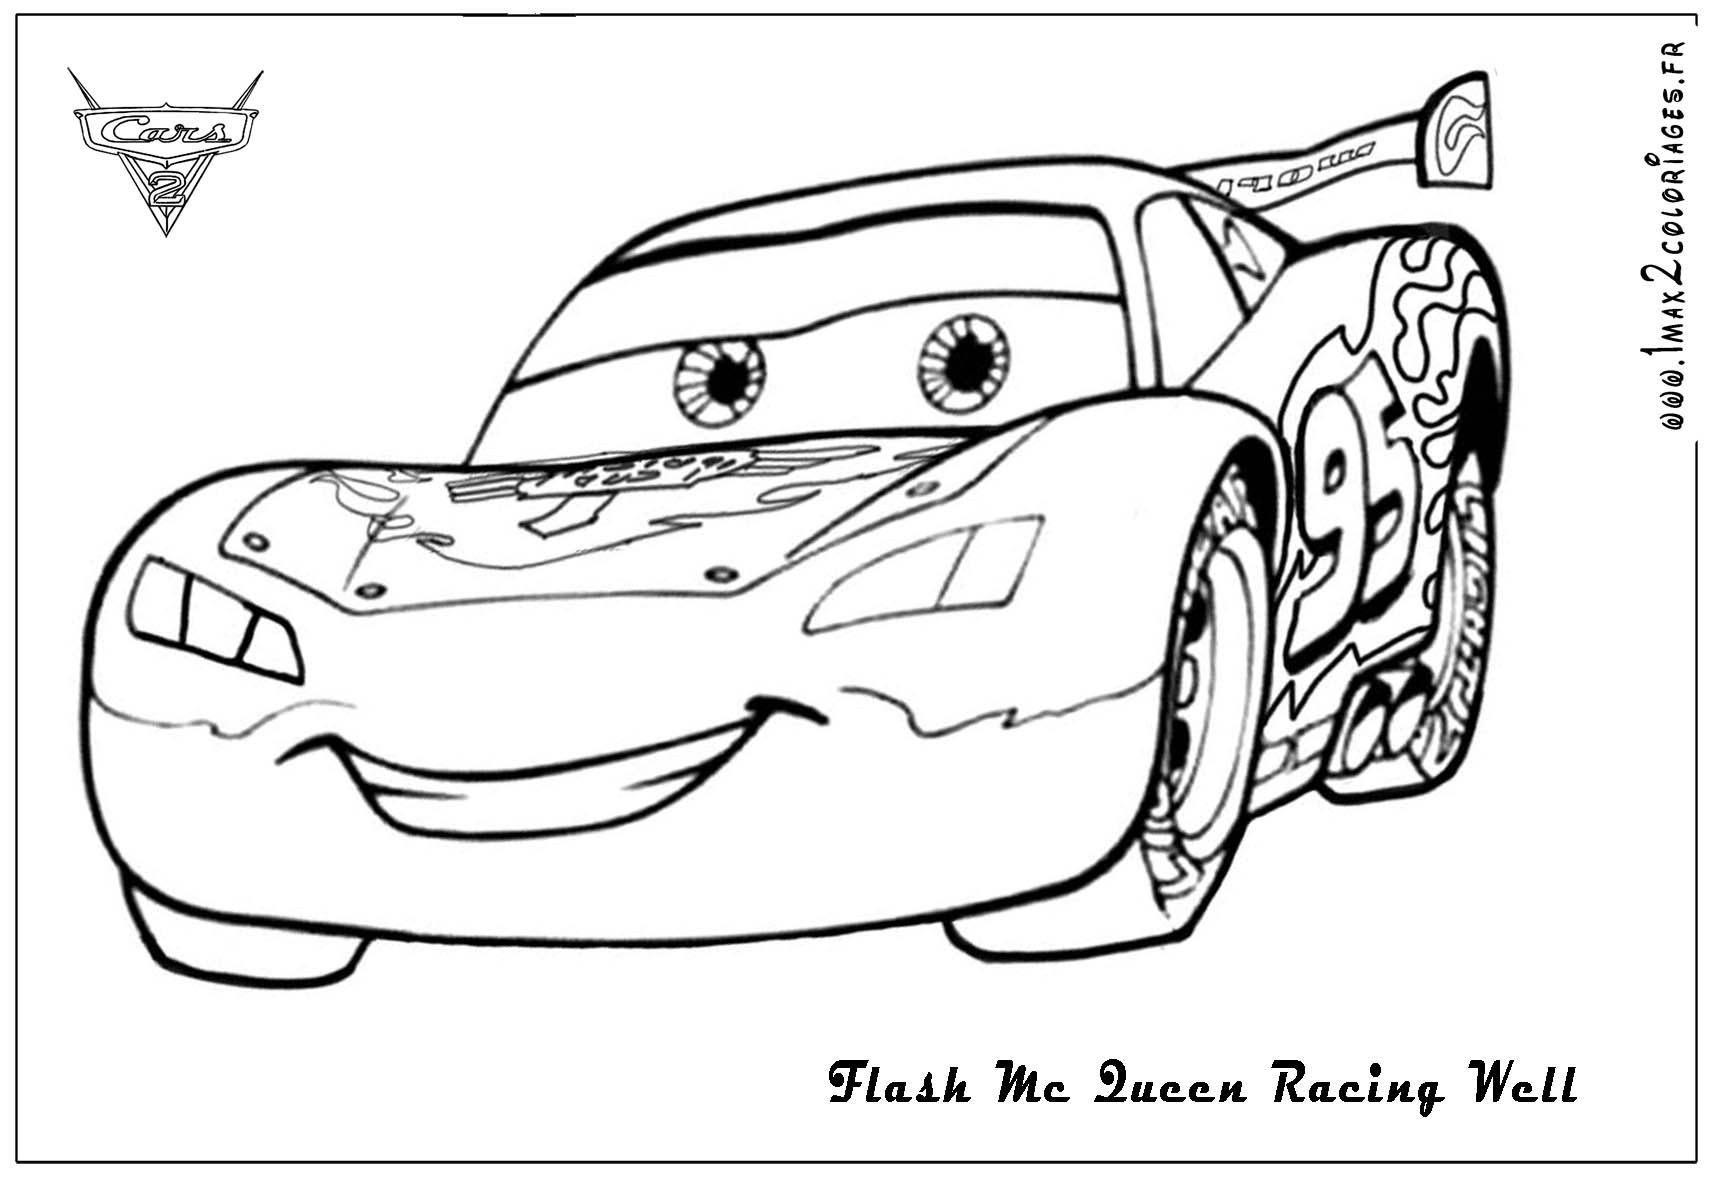 Lightning Mcqueen Coloring Pages - Free Large Images | Cars dedans Coloriage De Flash Mcqueen